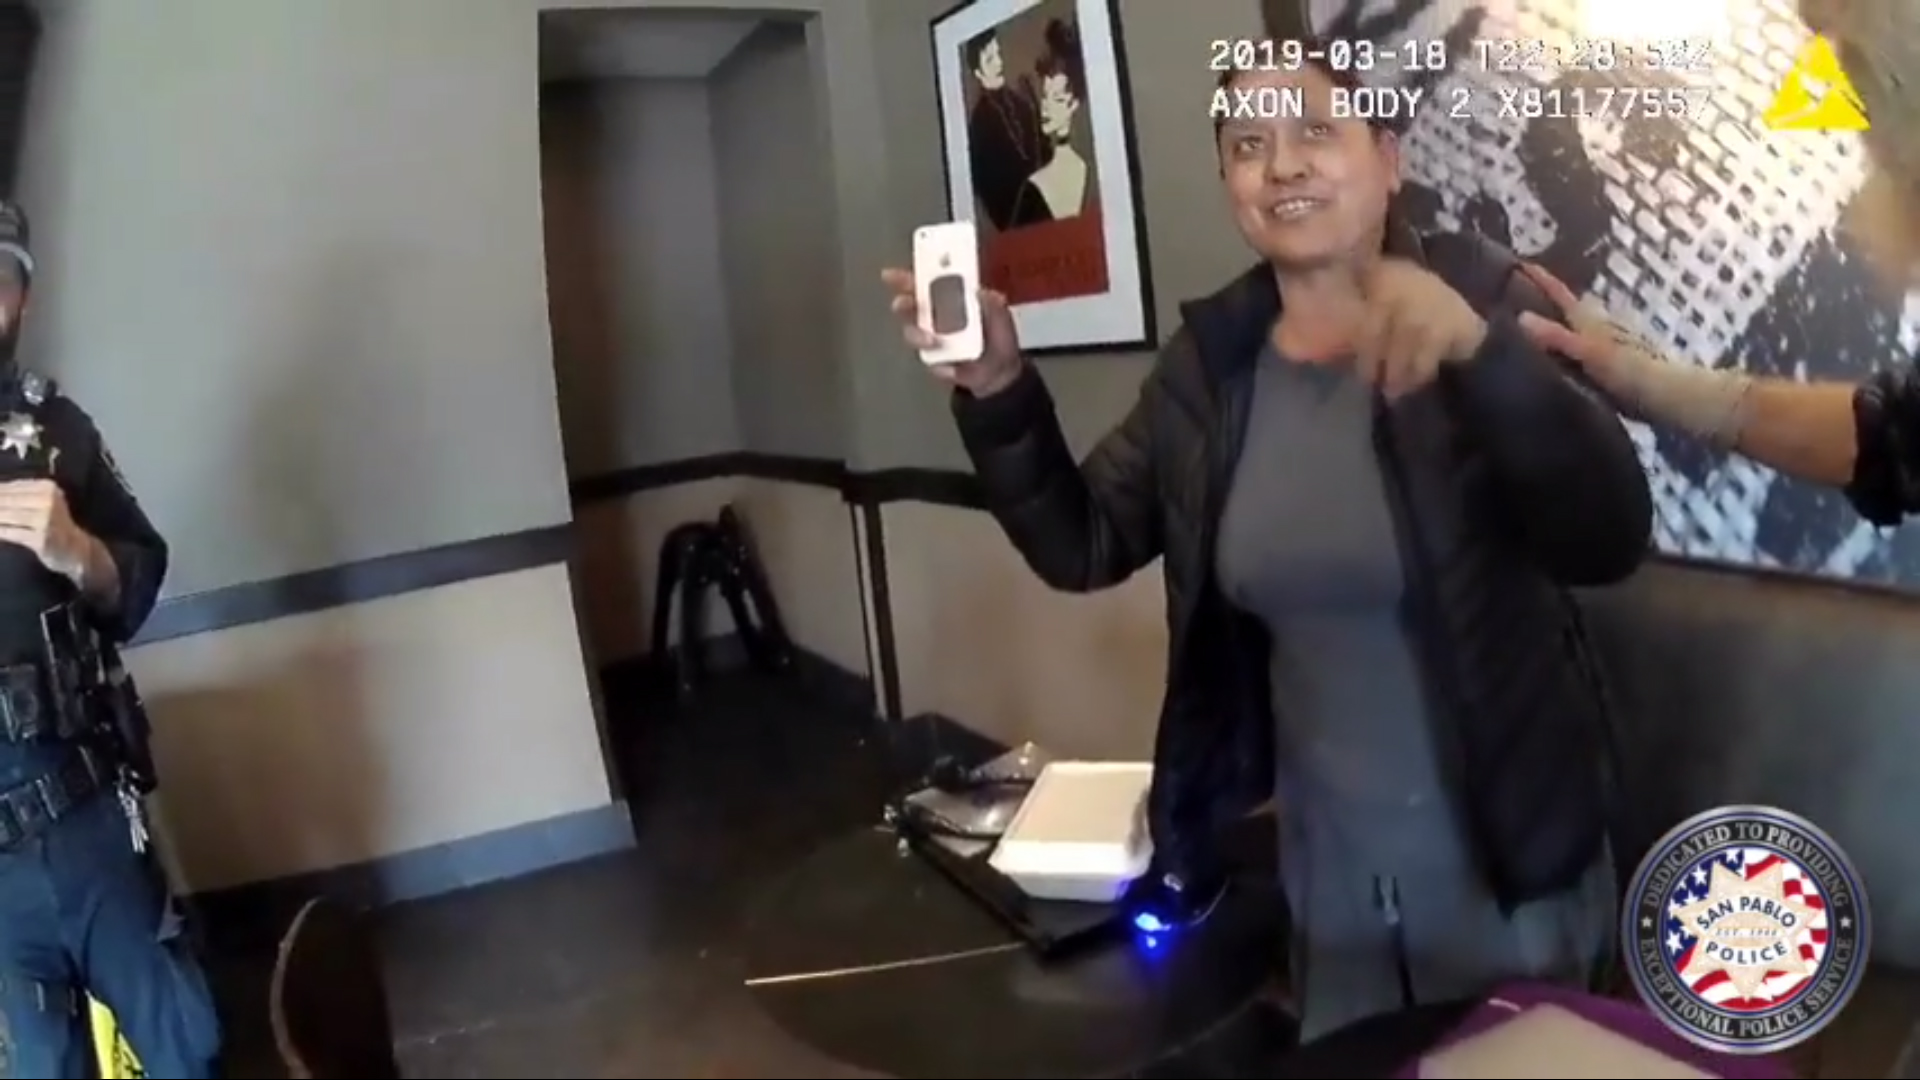 Police threaten to arrest Starbucks customer after mistaking her for different woman, body-cam footage shows